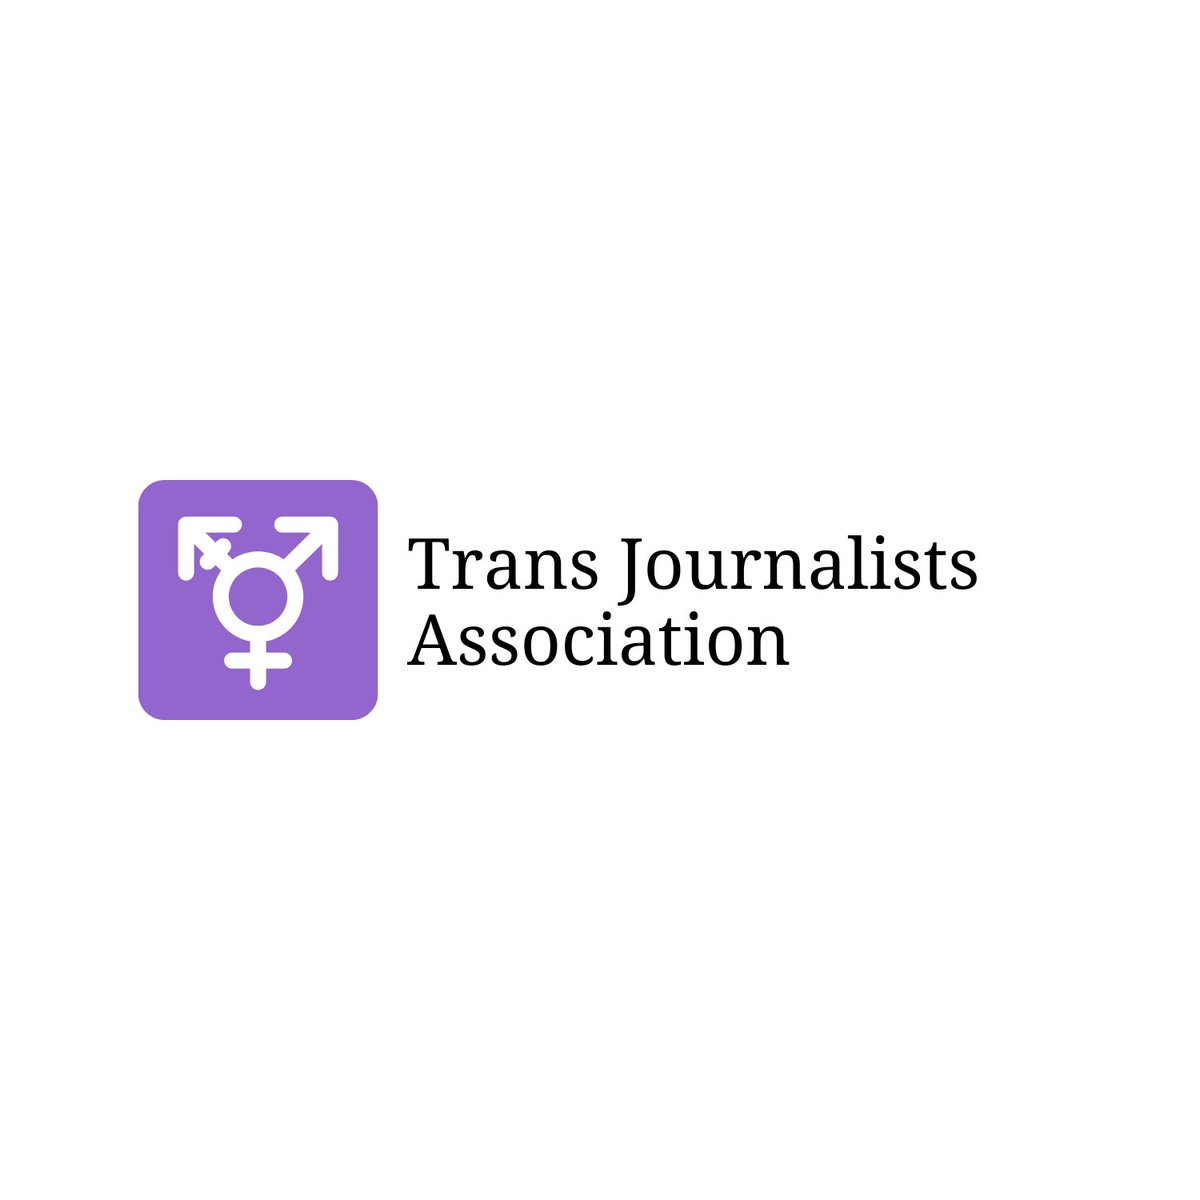 Some personal news: We are a collective of trans journalists who have felt erased and misrepresented by the industry at large. Today, we launch the Trans Journalists Association. 1/